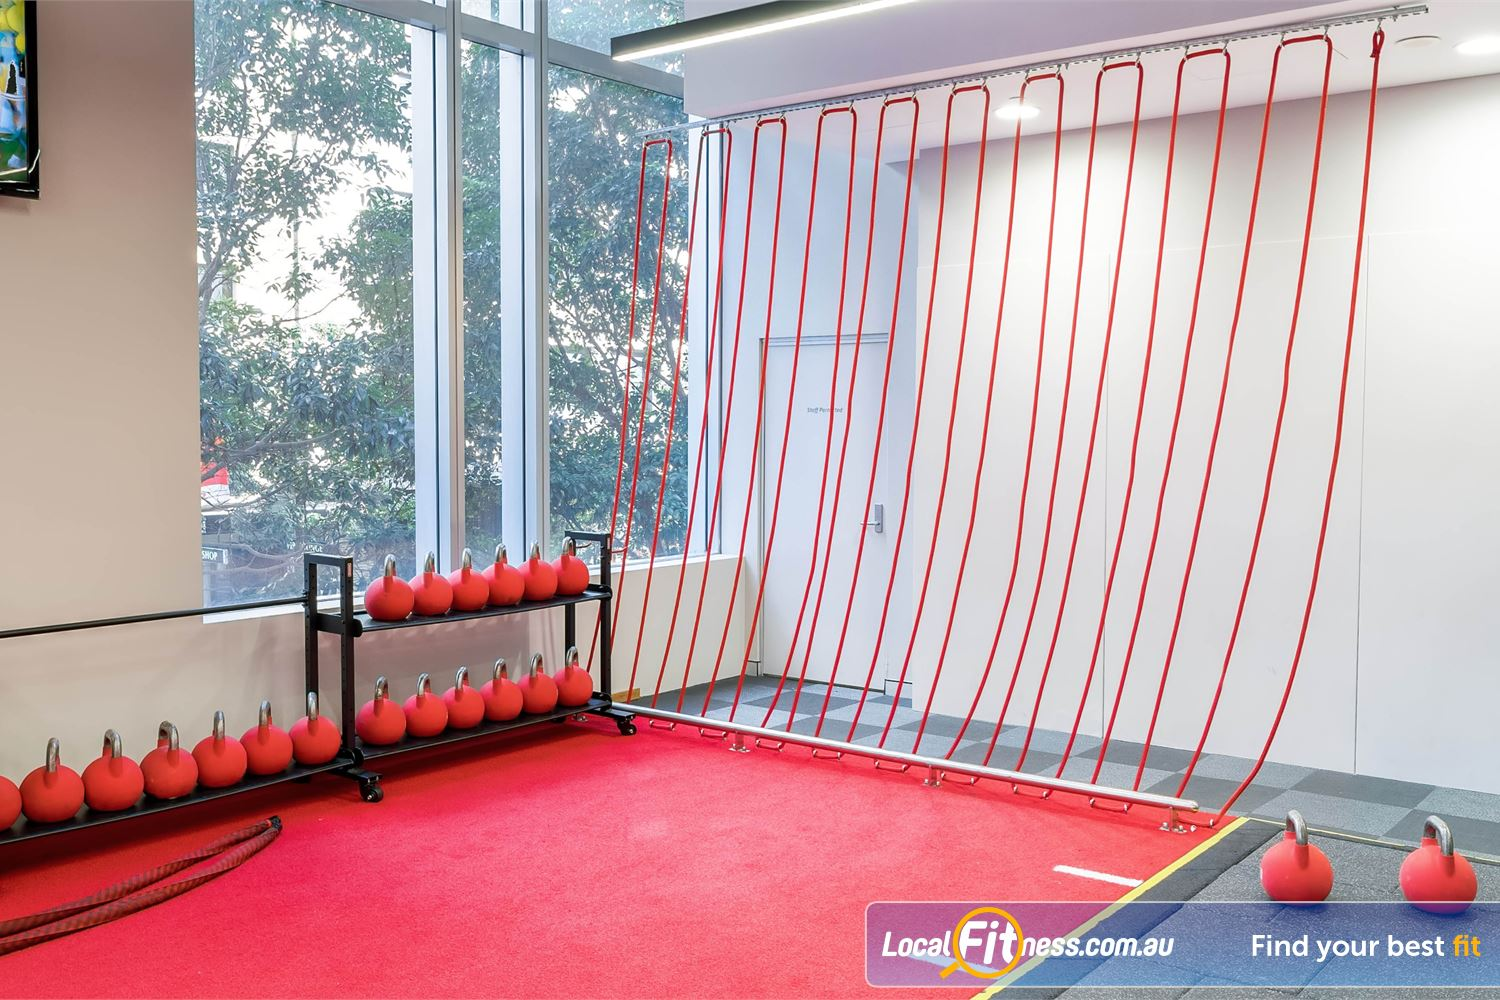 Fitness First Platinum Park St Sydney Experience a whole new training experience with Fitness First Dynamic Movement Training (DMT)